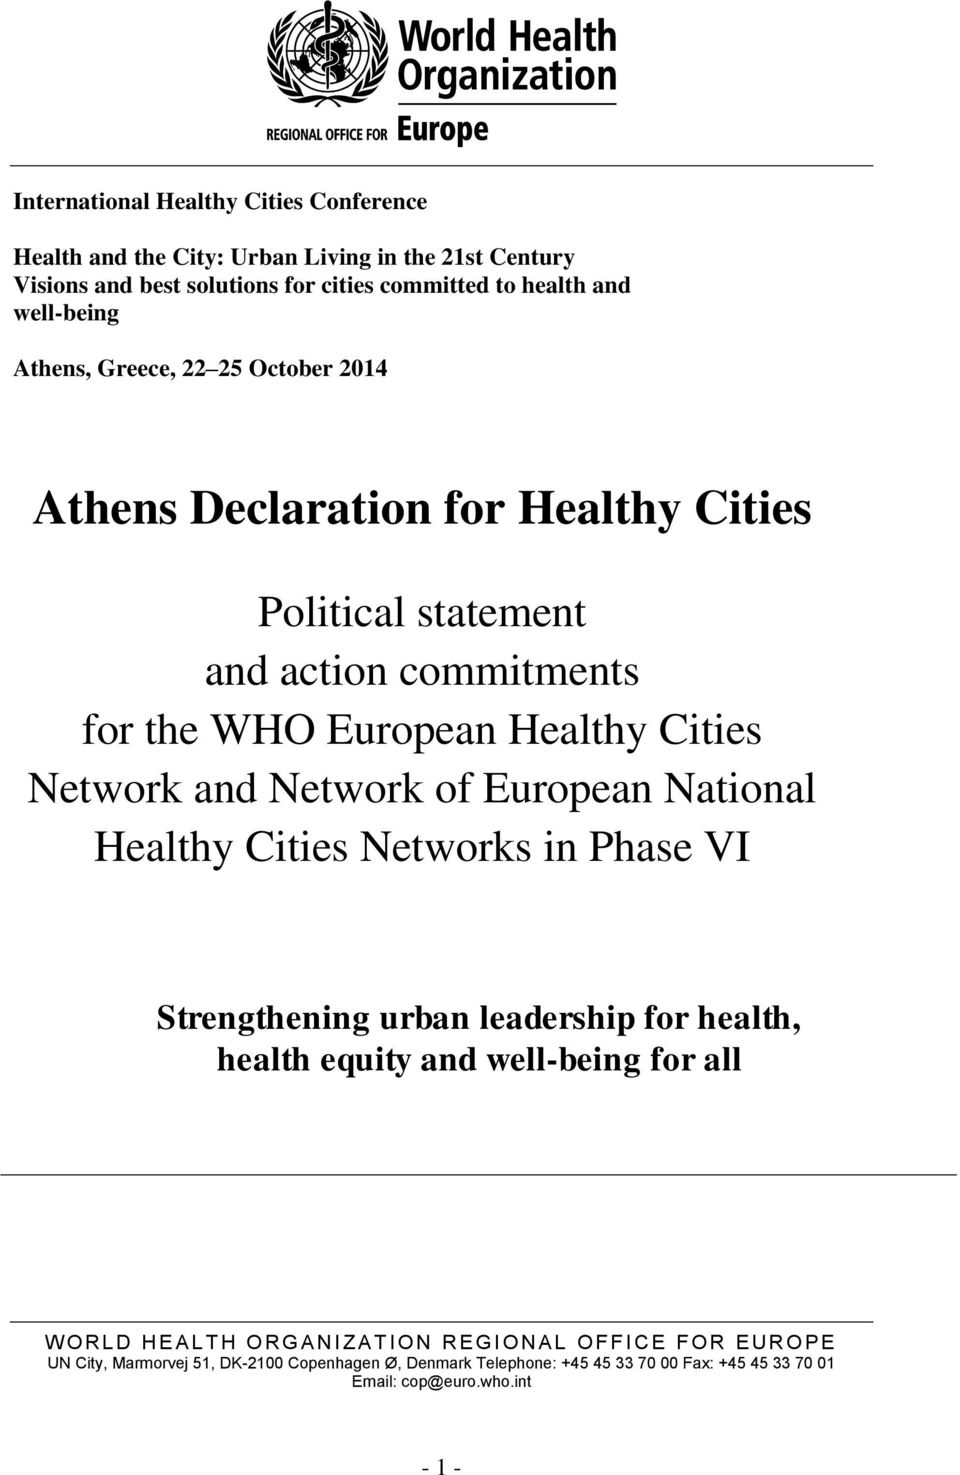 European National Healthy Cities Networks in Phase VI Strengthening urban leadership for health, health equity and well-being for all W O R L D H E A L T H O R G A N I Z A T